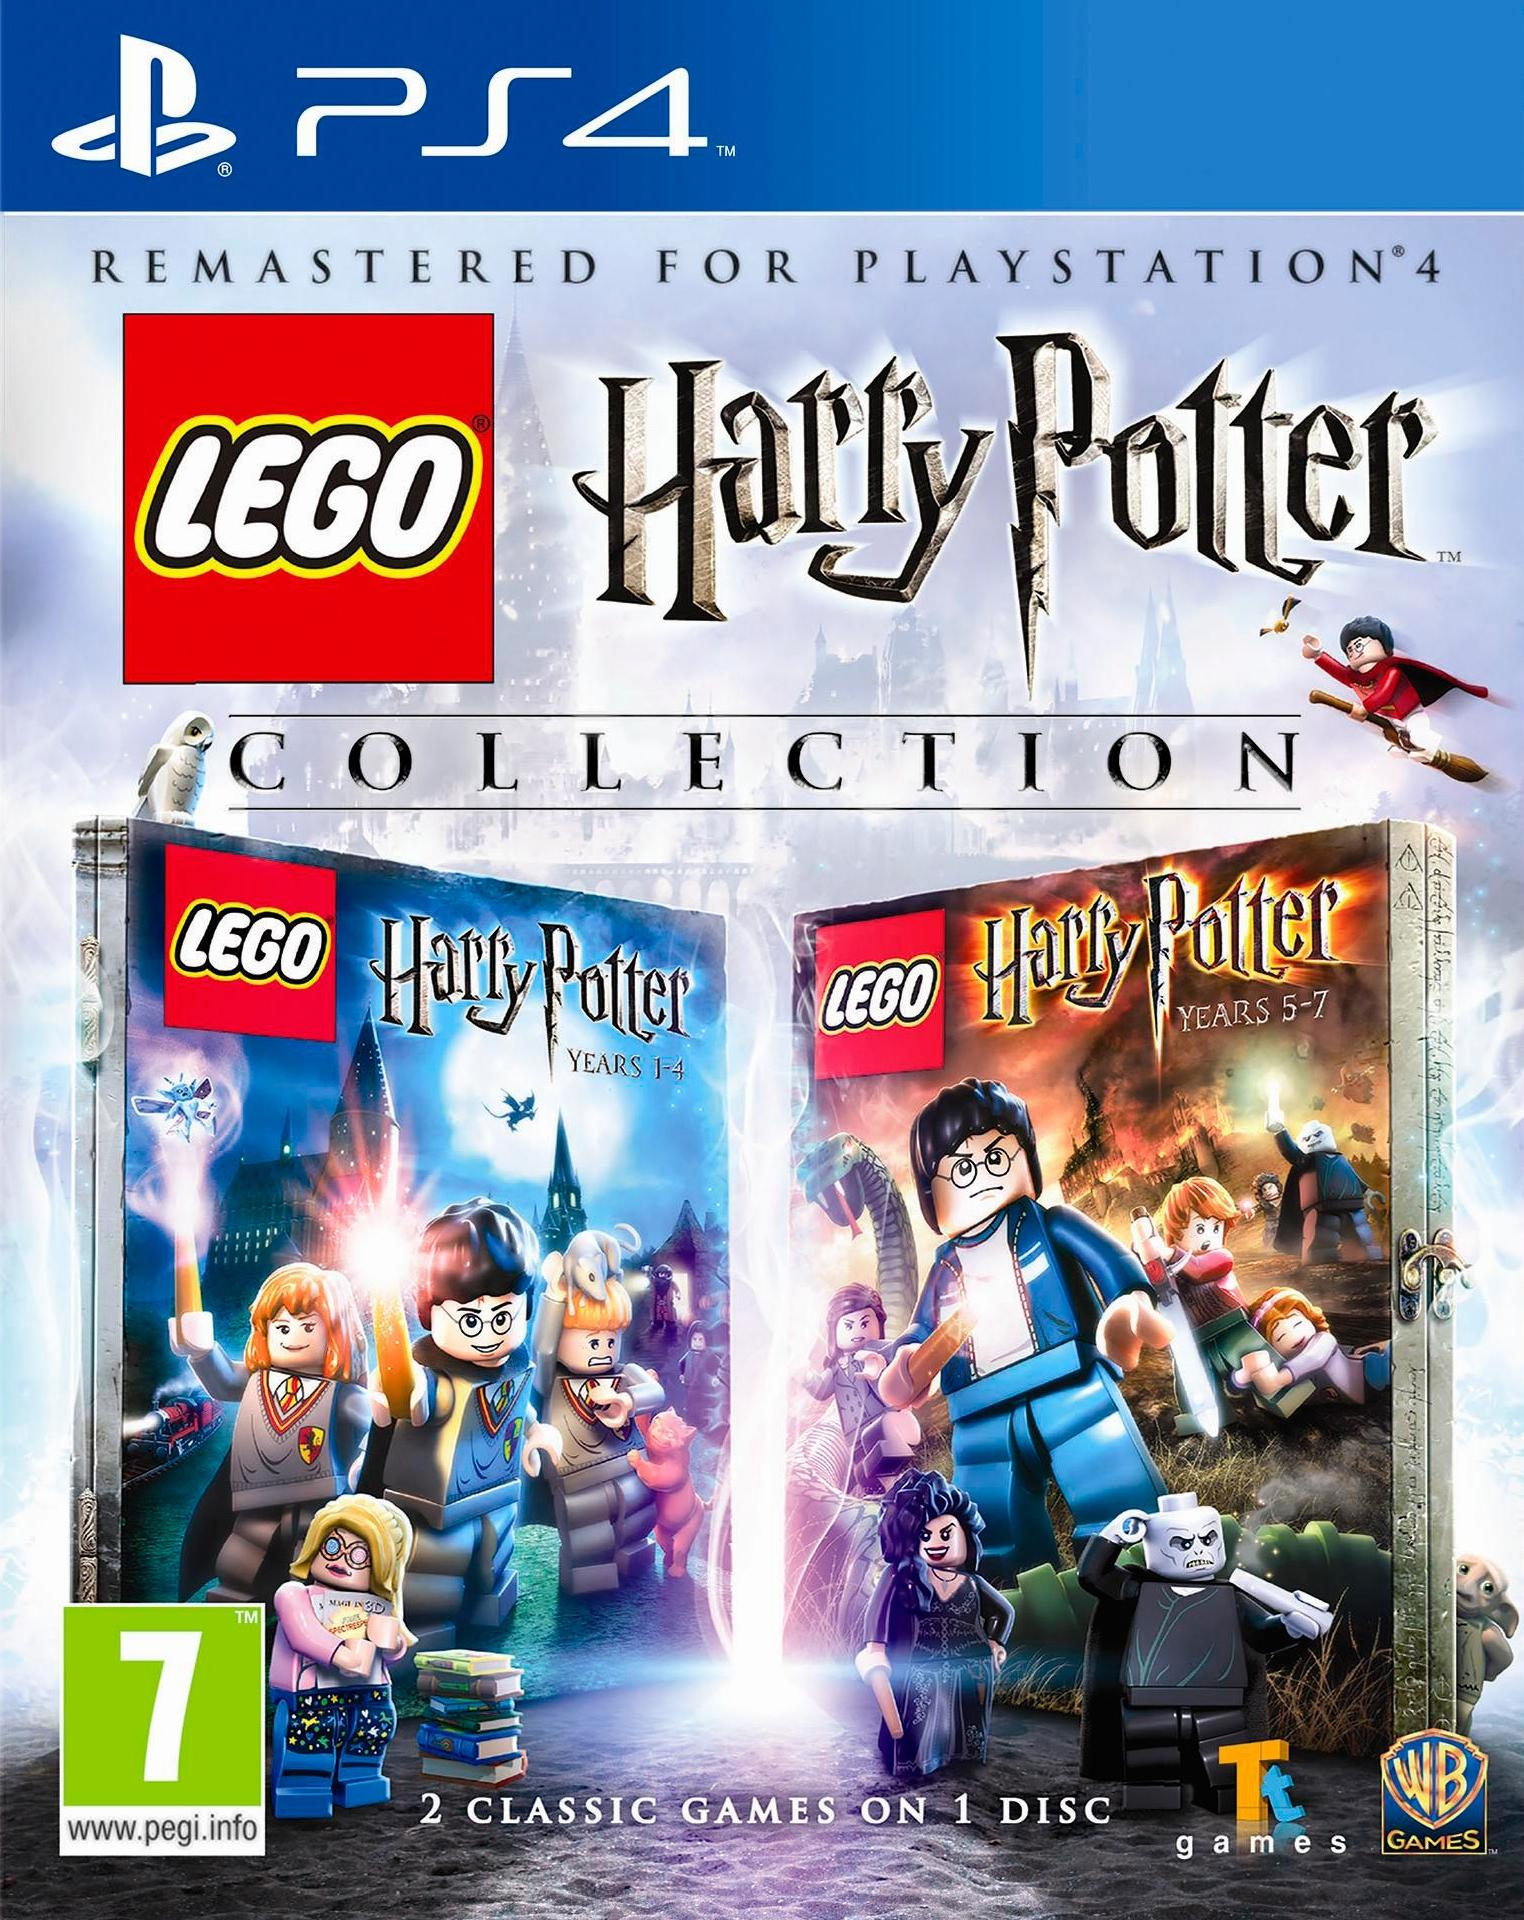 Warner Bros LEGO Harry Potter 1-7 Collection PS4 (1000631717) thumbnail